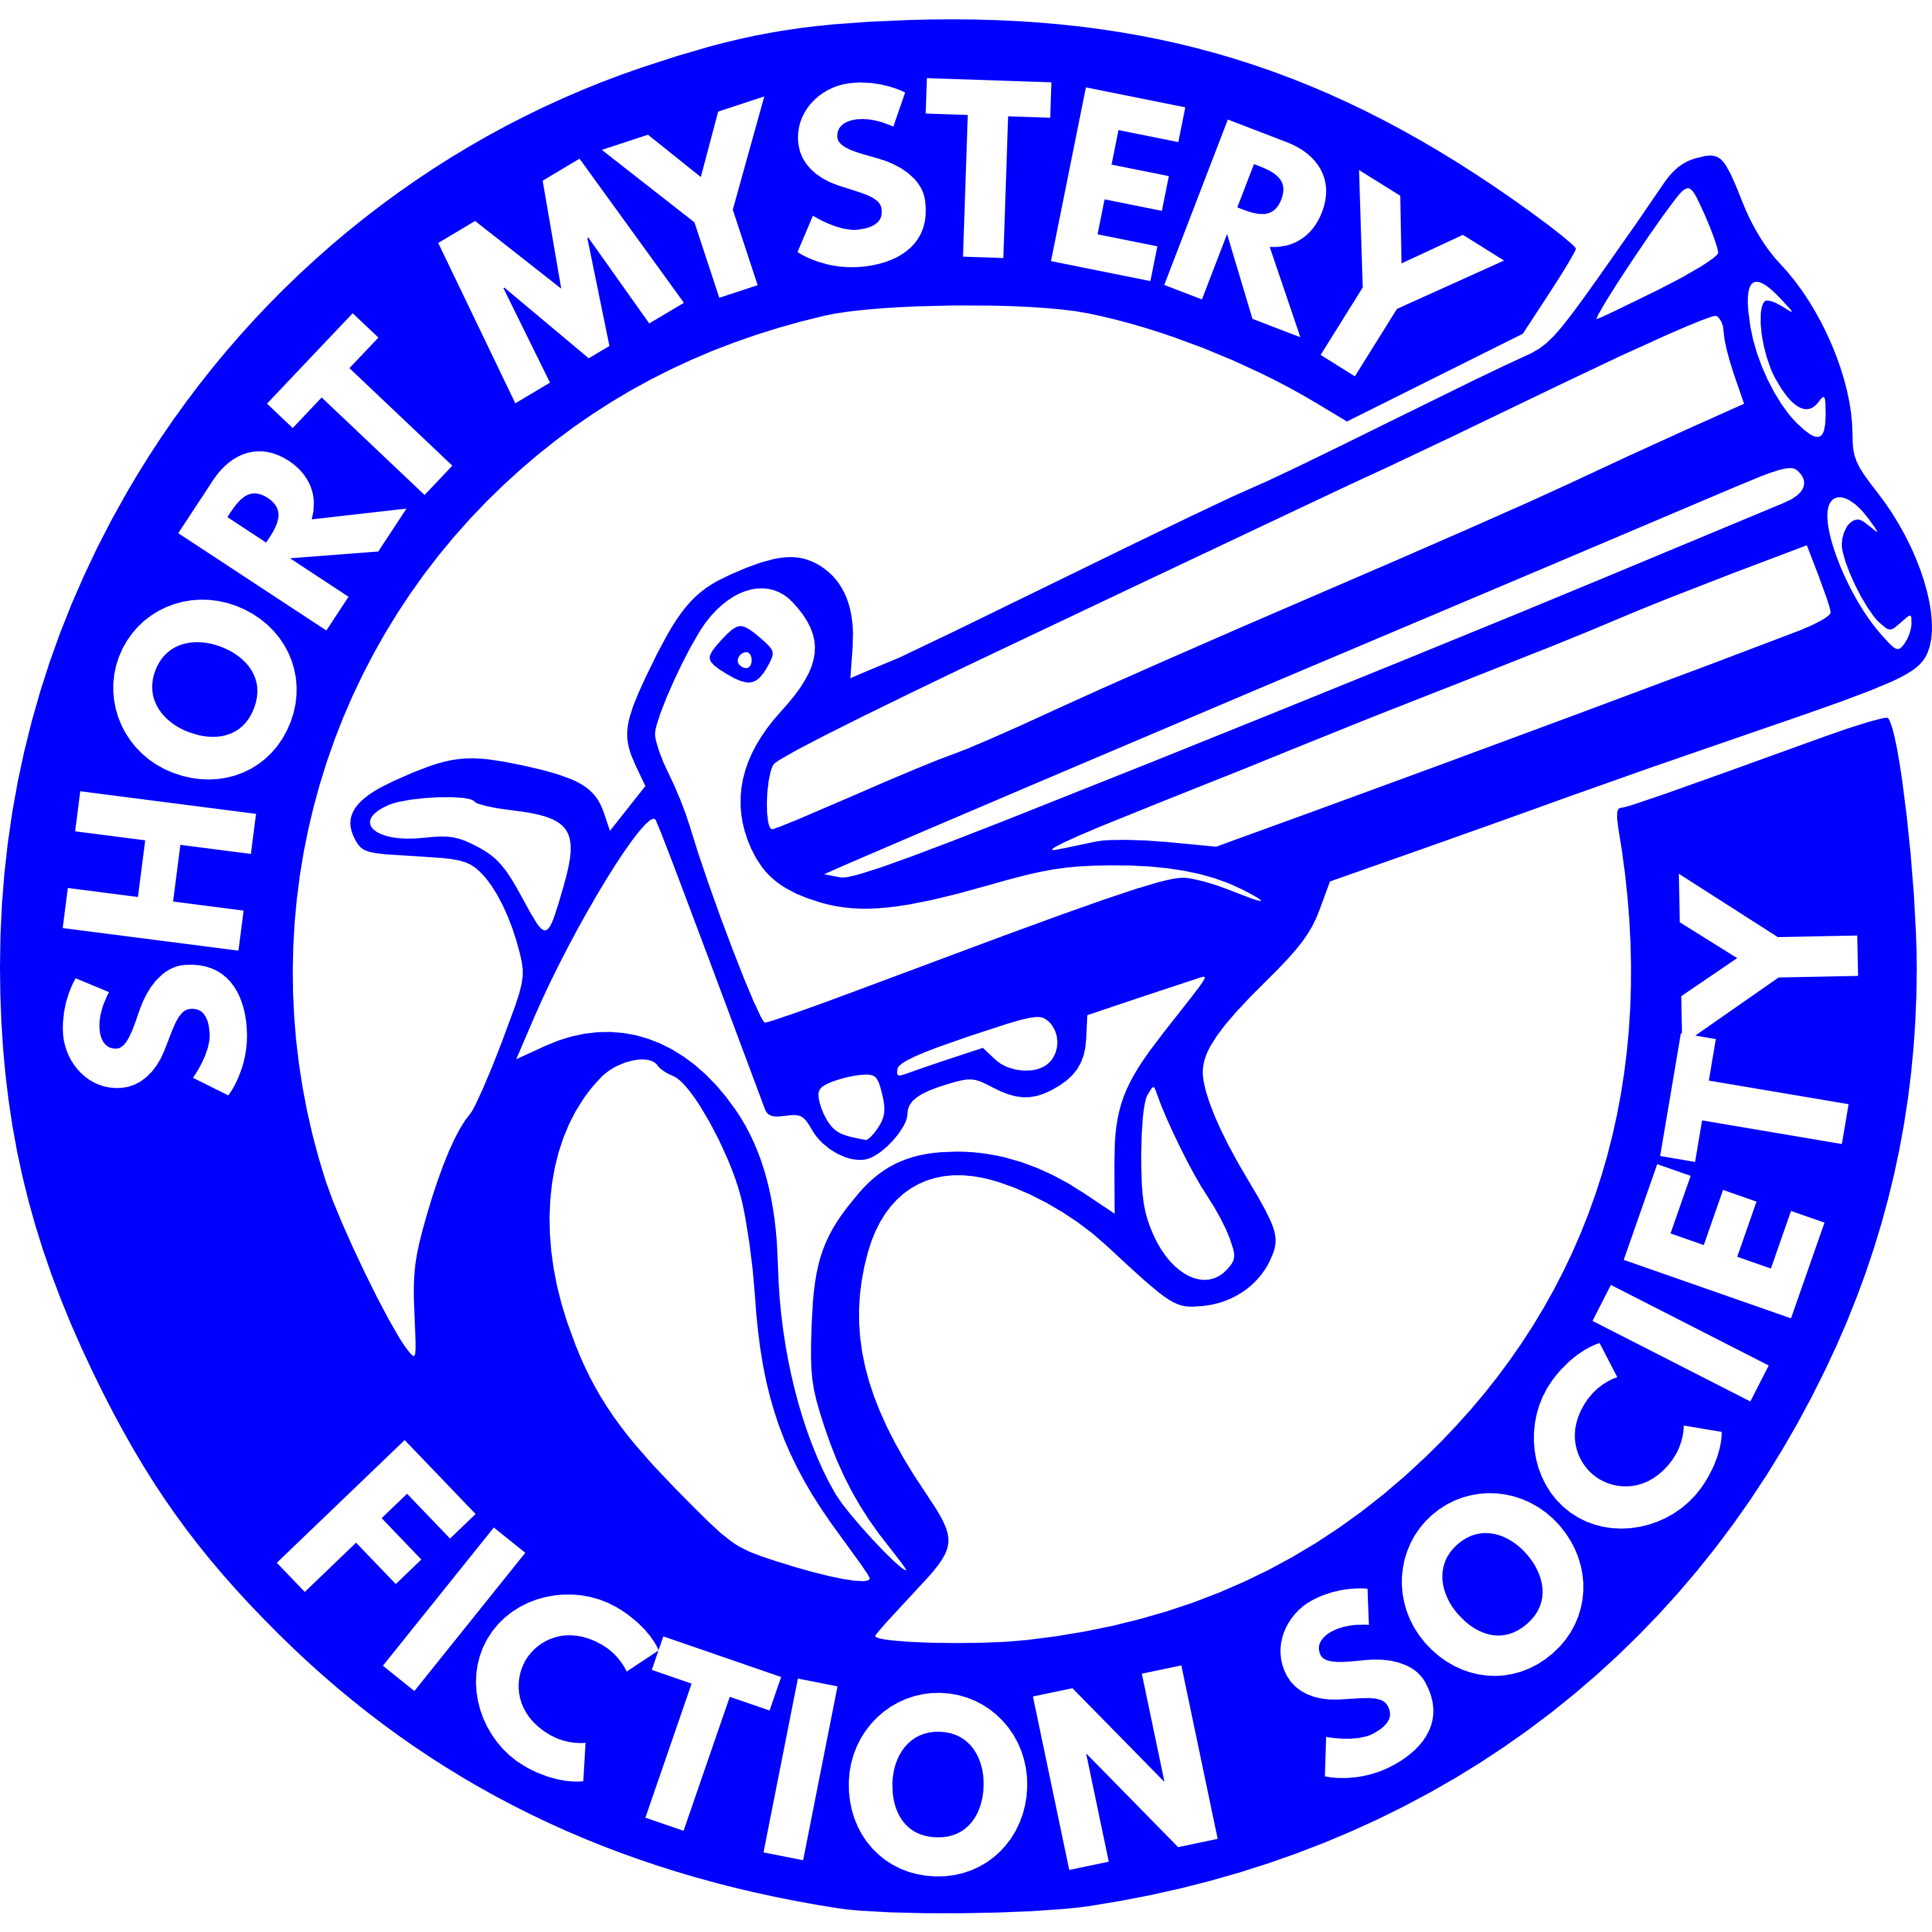 Tennessee tri star clipart clip royalty free library Short Fiction Archives - Women of Mystery clip royalty free library